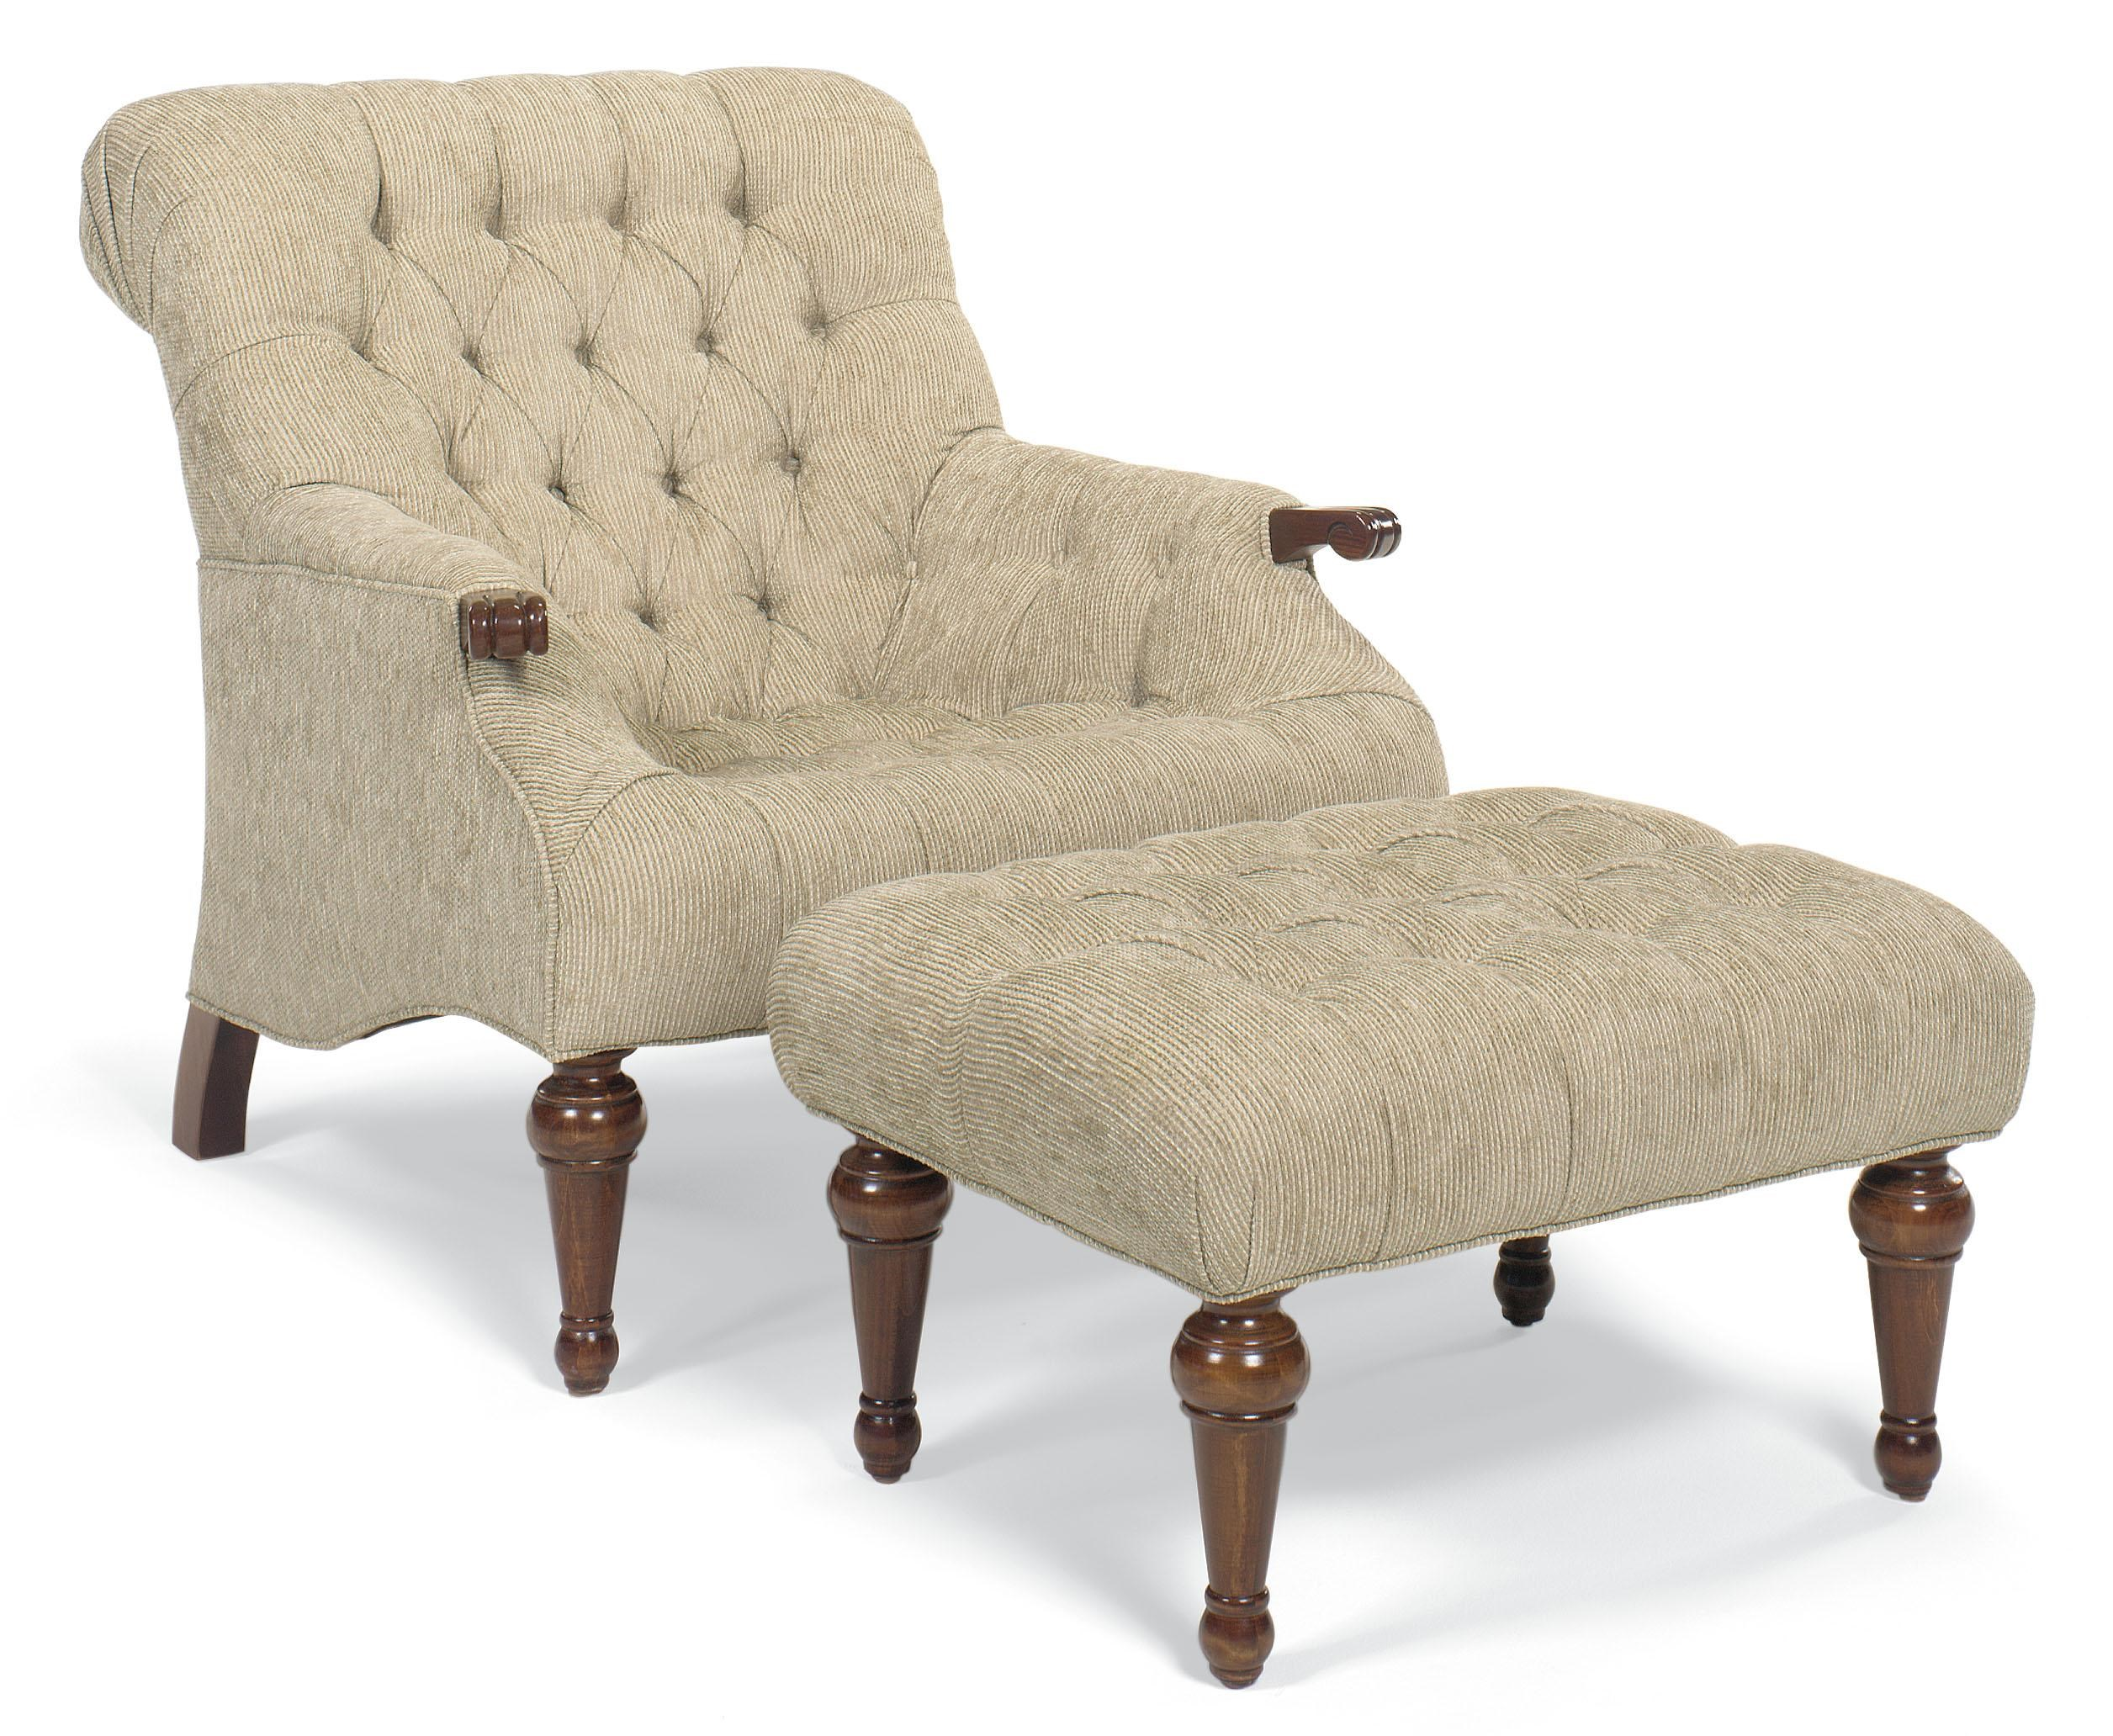 Chairs Button Tufted Chair And Ottoman With Turned Wood Legs By Fairfield